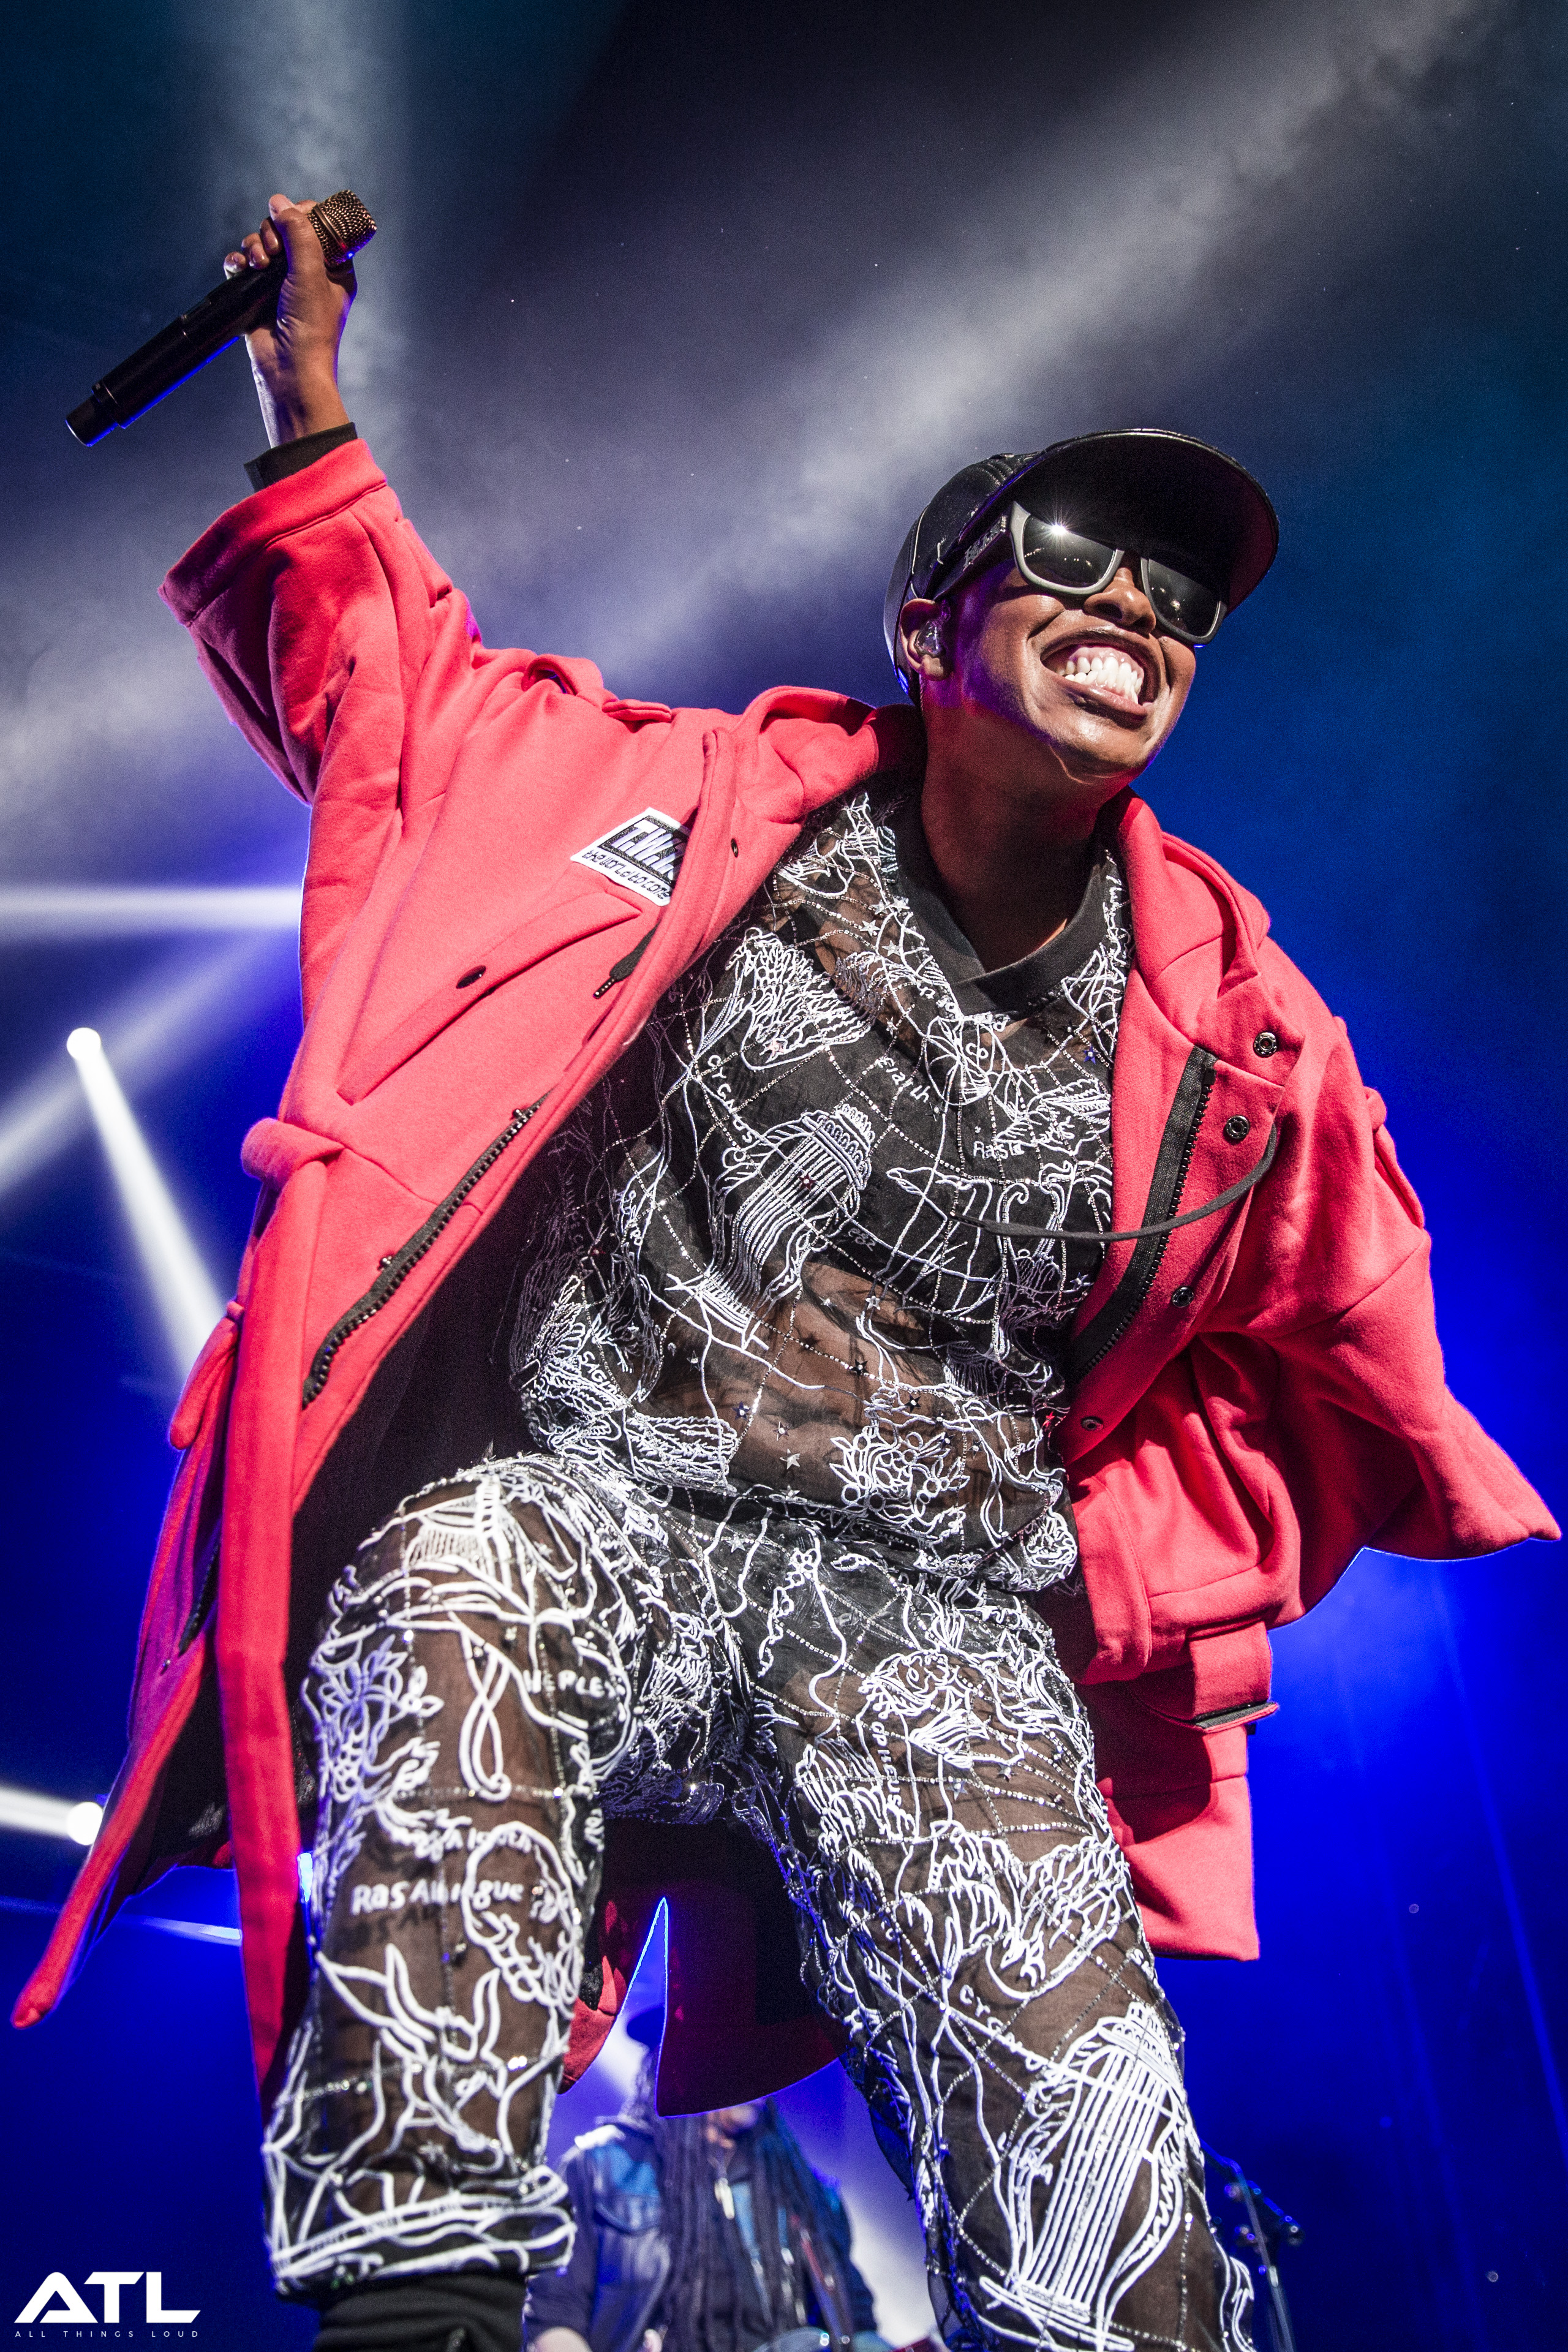 GALLERY: Skunk Anansie @ AFAS Live - All Things Loud Paramore Afas Live